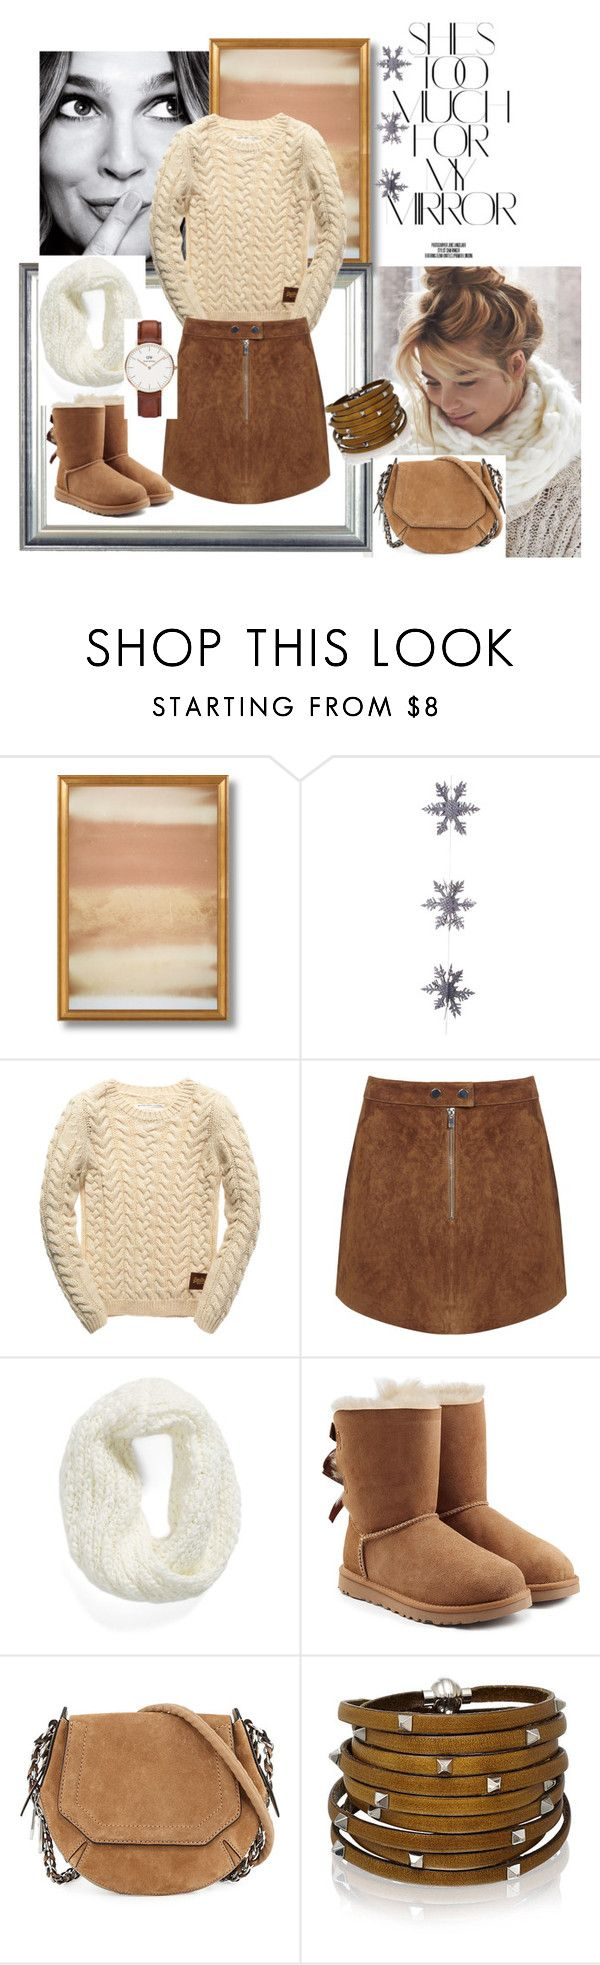 """Untitled #170"" by sanela-o on Polyvore featuring Rika, East of India, Superdry, Miss Selfridge, Collection XIIX, UGG Australia, rag & bone, Sif Jakobs Jewellery and Daniel Wellington"